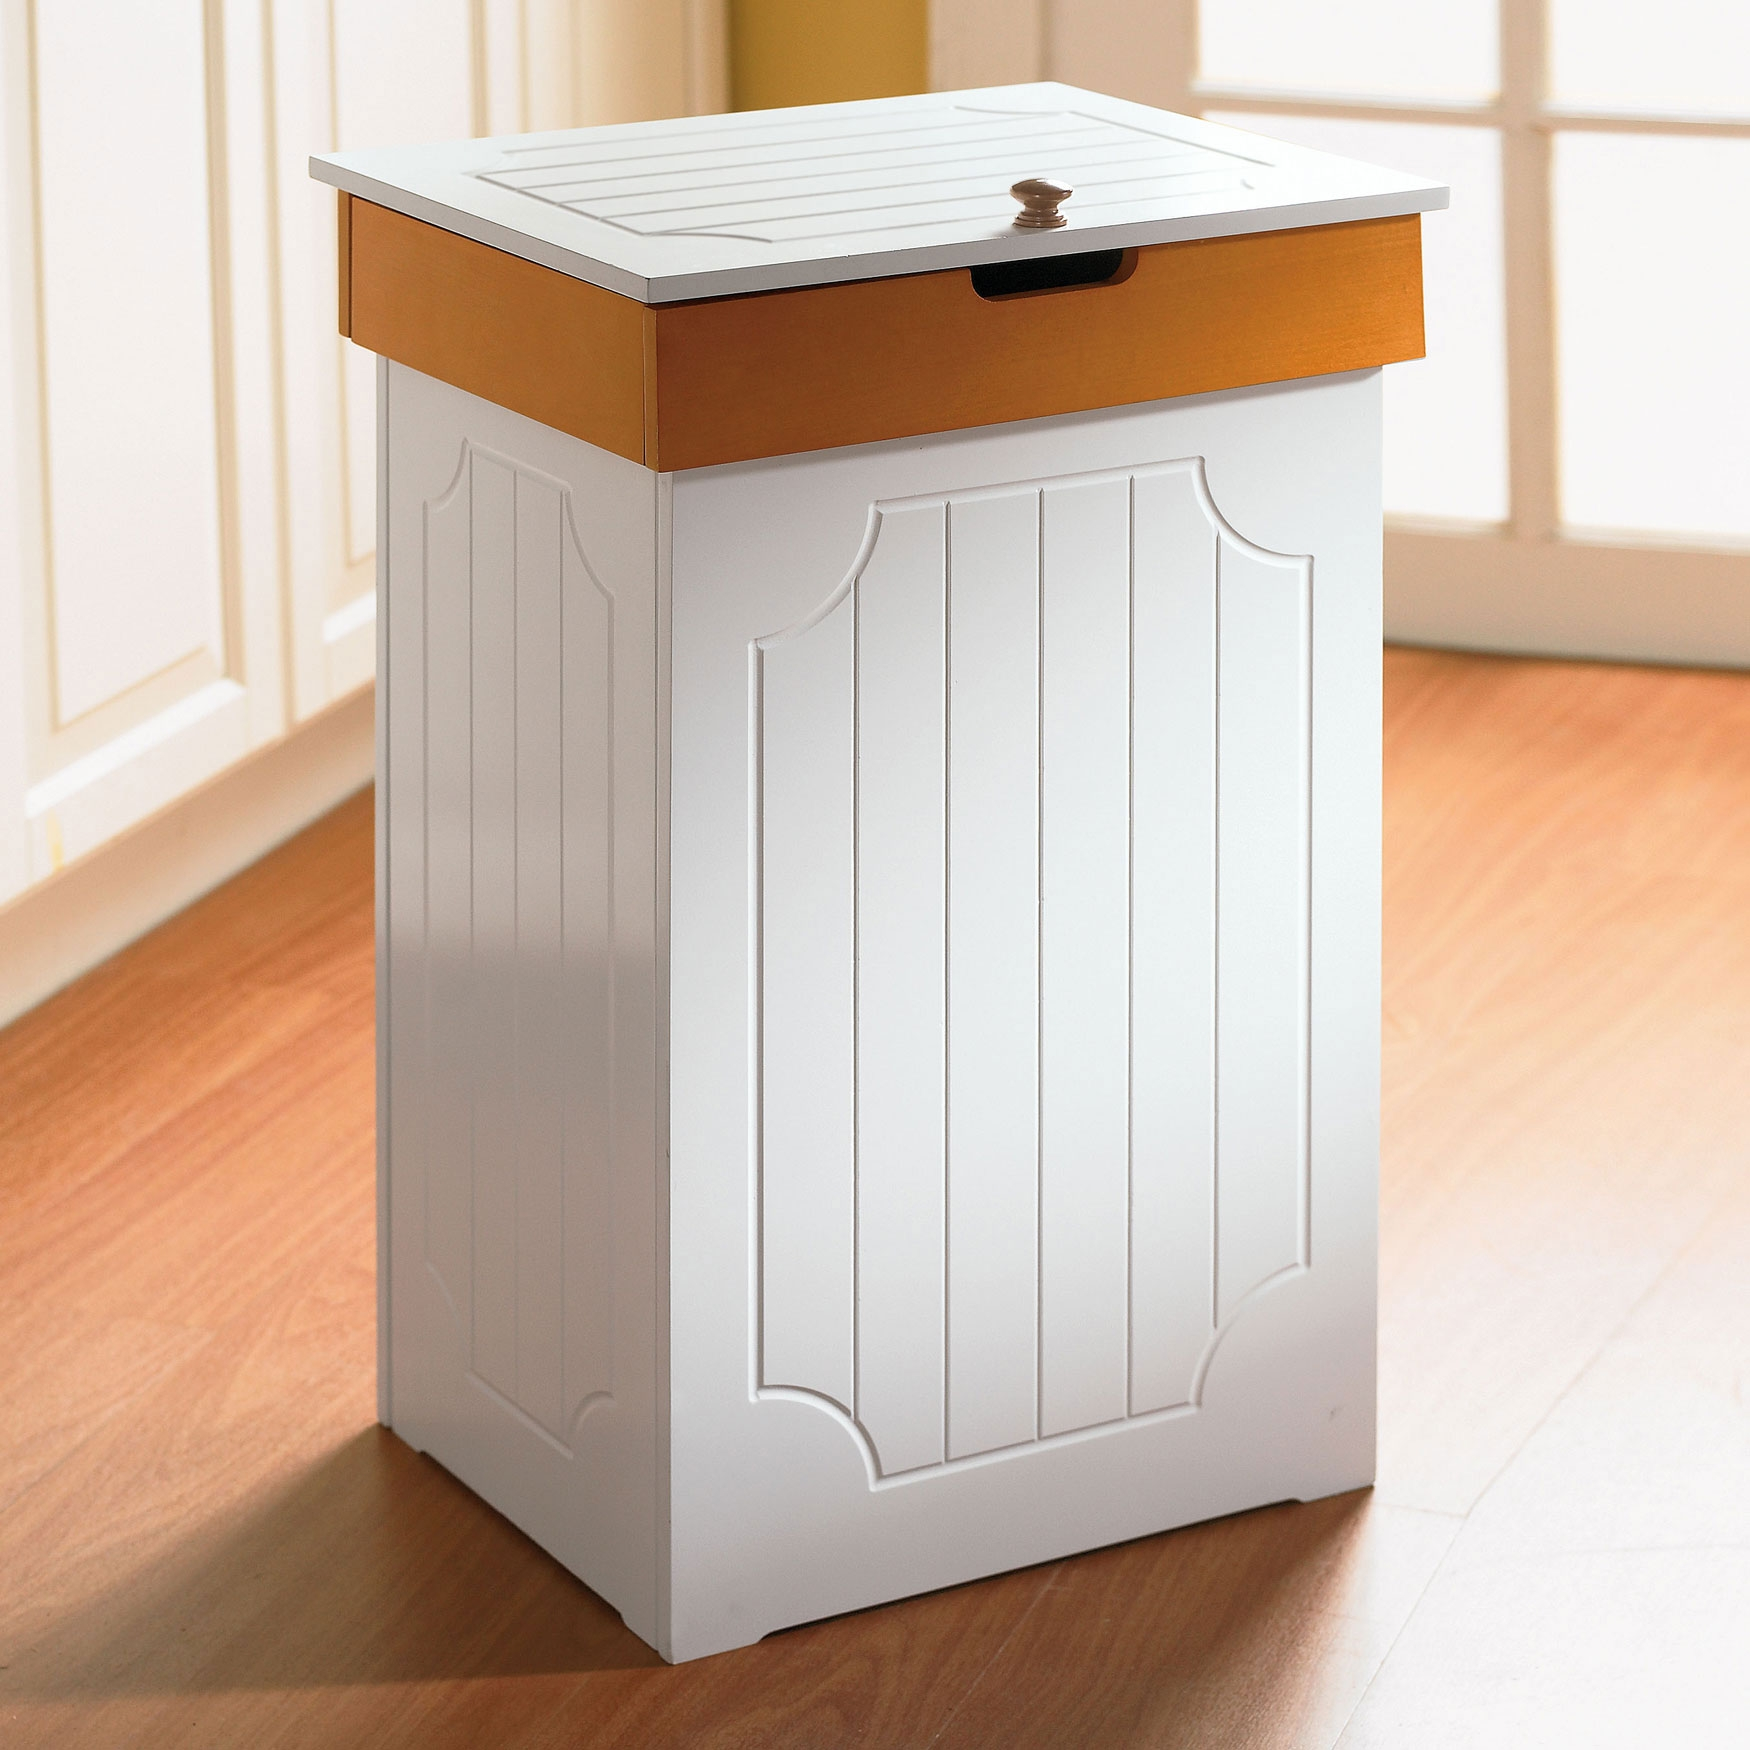 Decorative Wooden Kitchen Garbage Cans